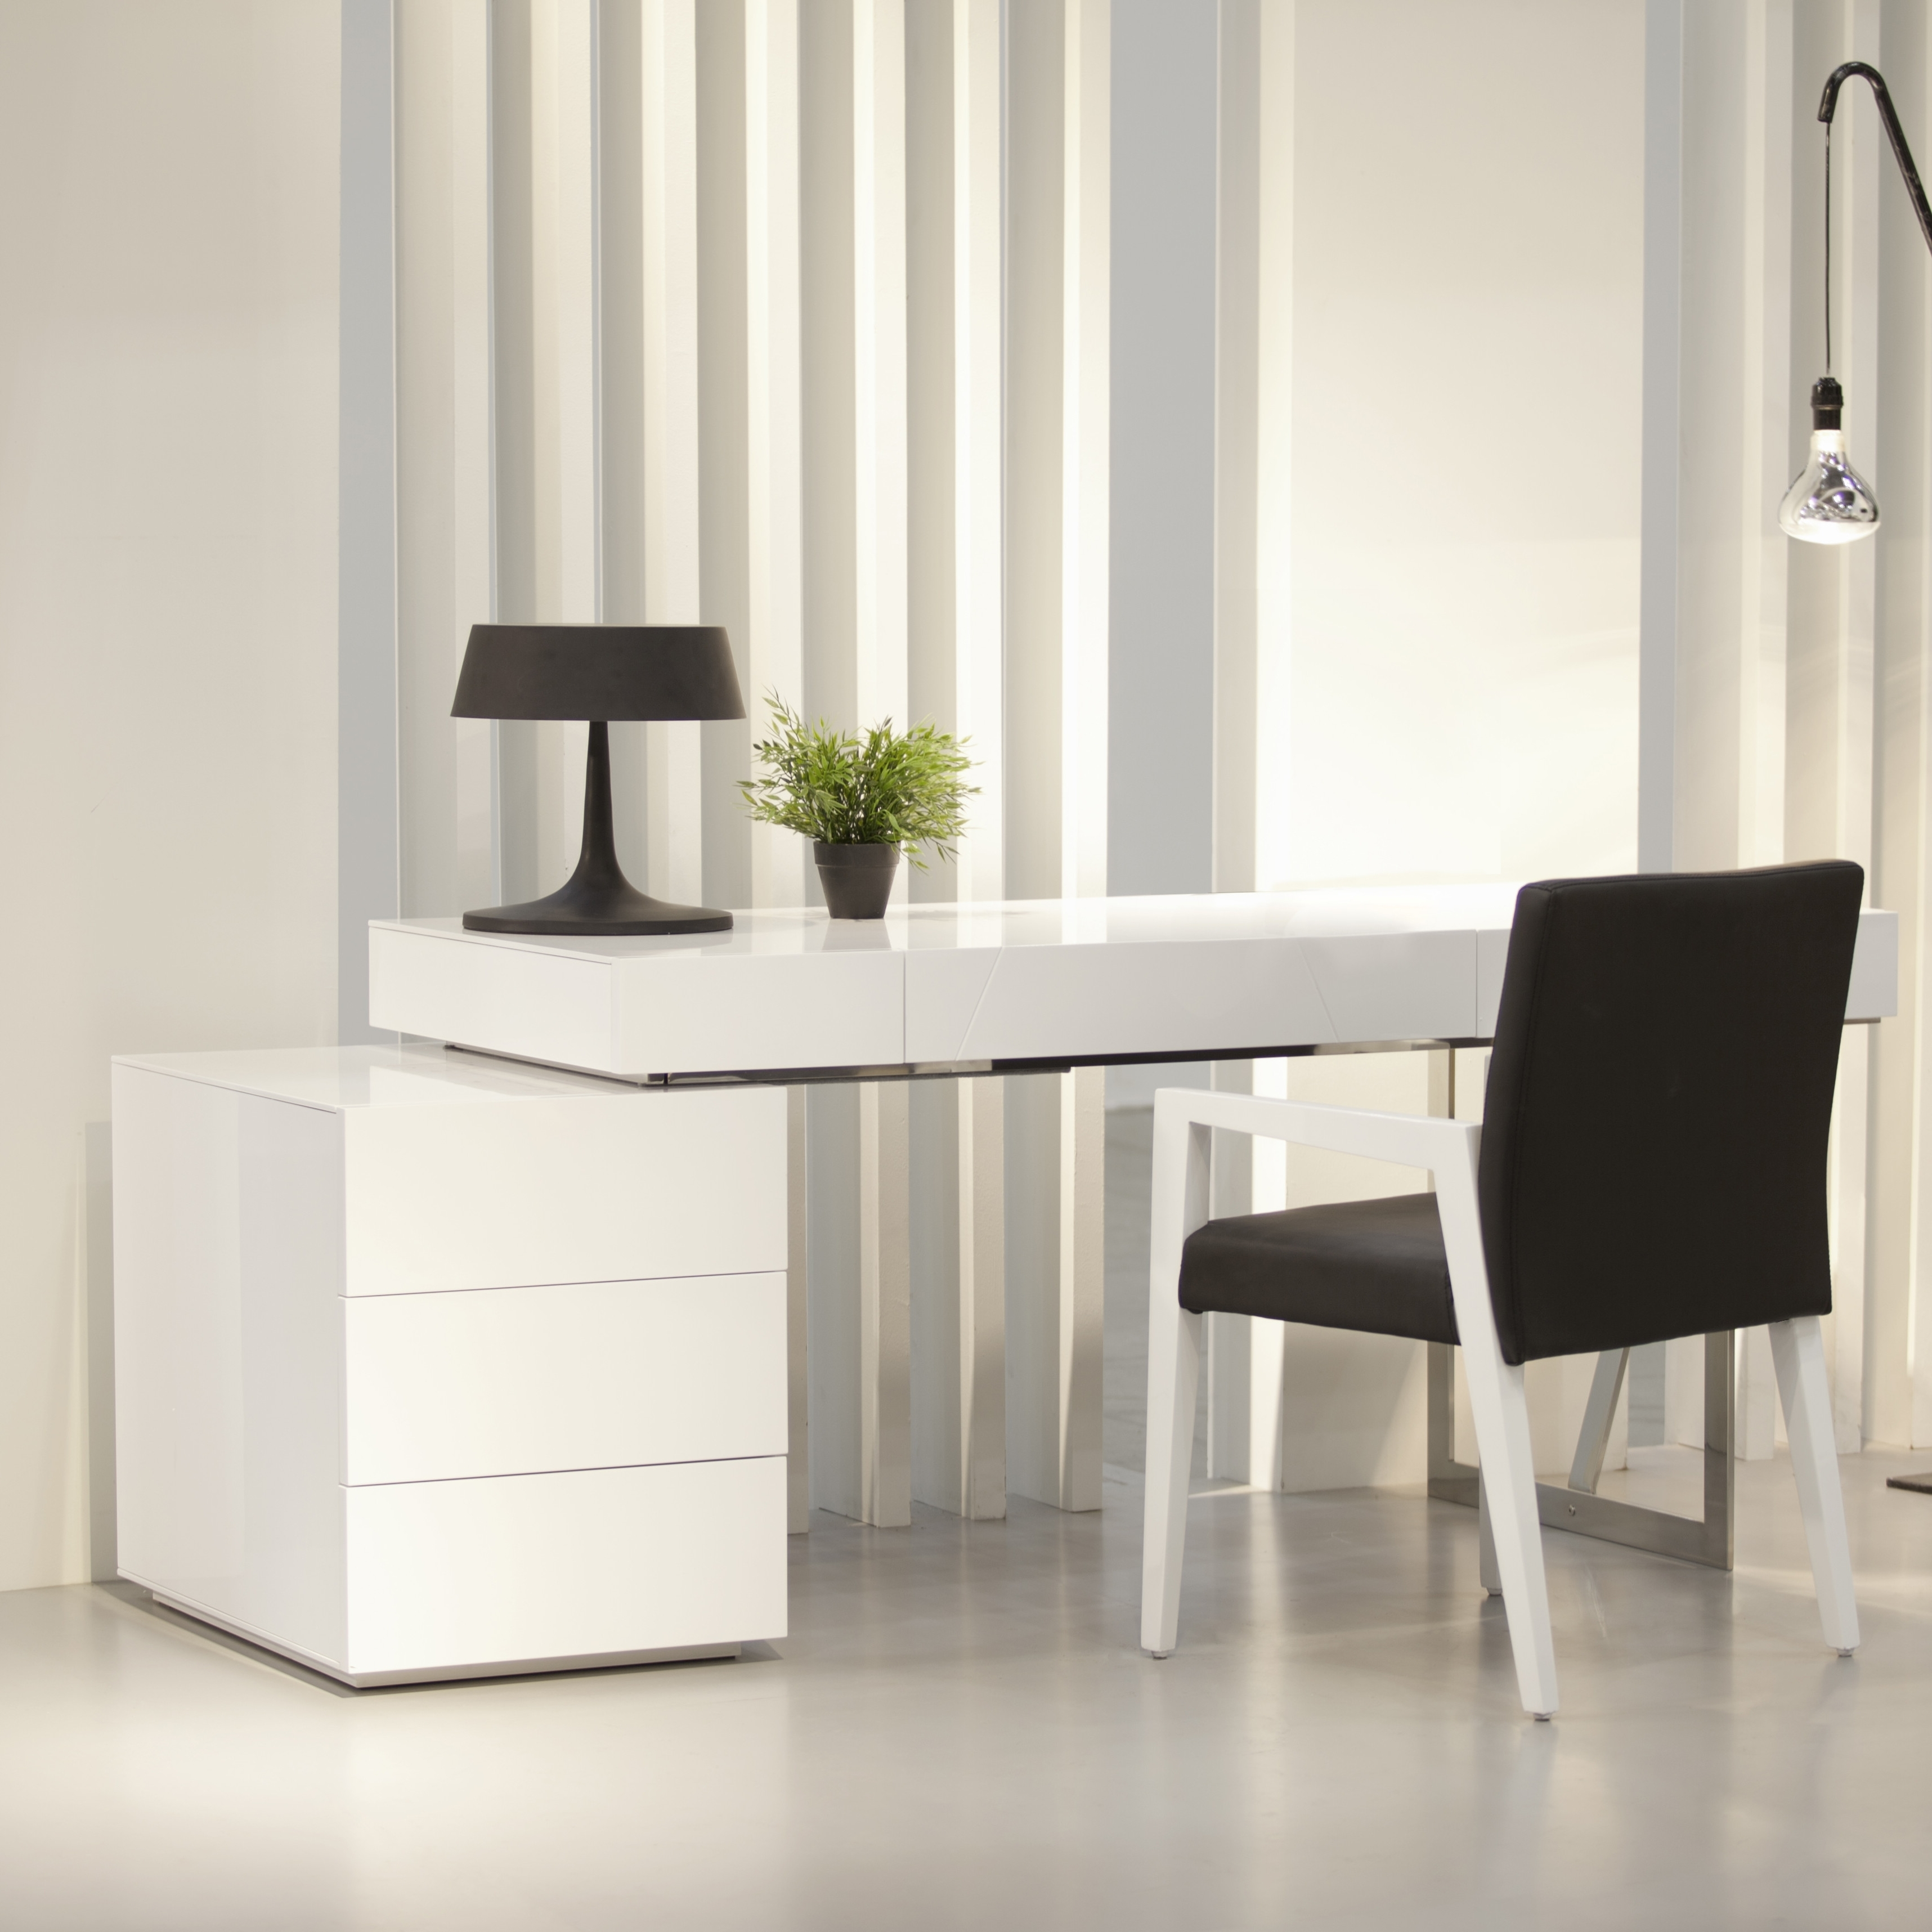 Recent Computer Desks At Wayfair With Furniture: Luxury White Computer Desk Wayfair For Modern Office Design (View 8 of 20)